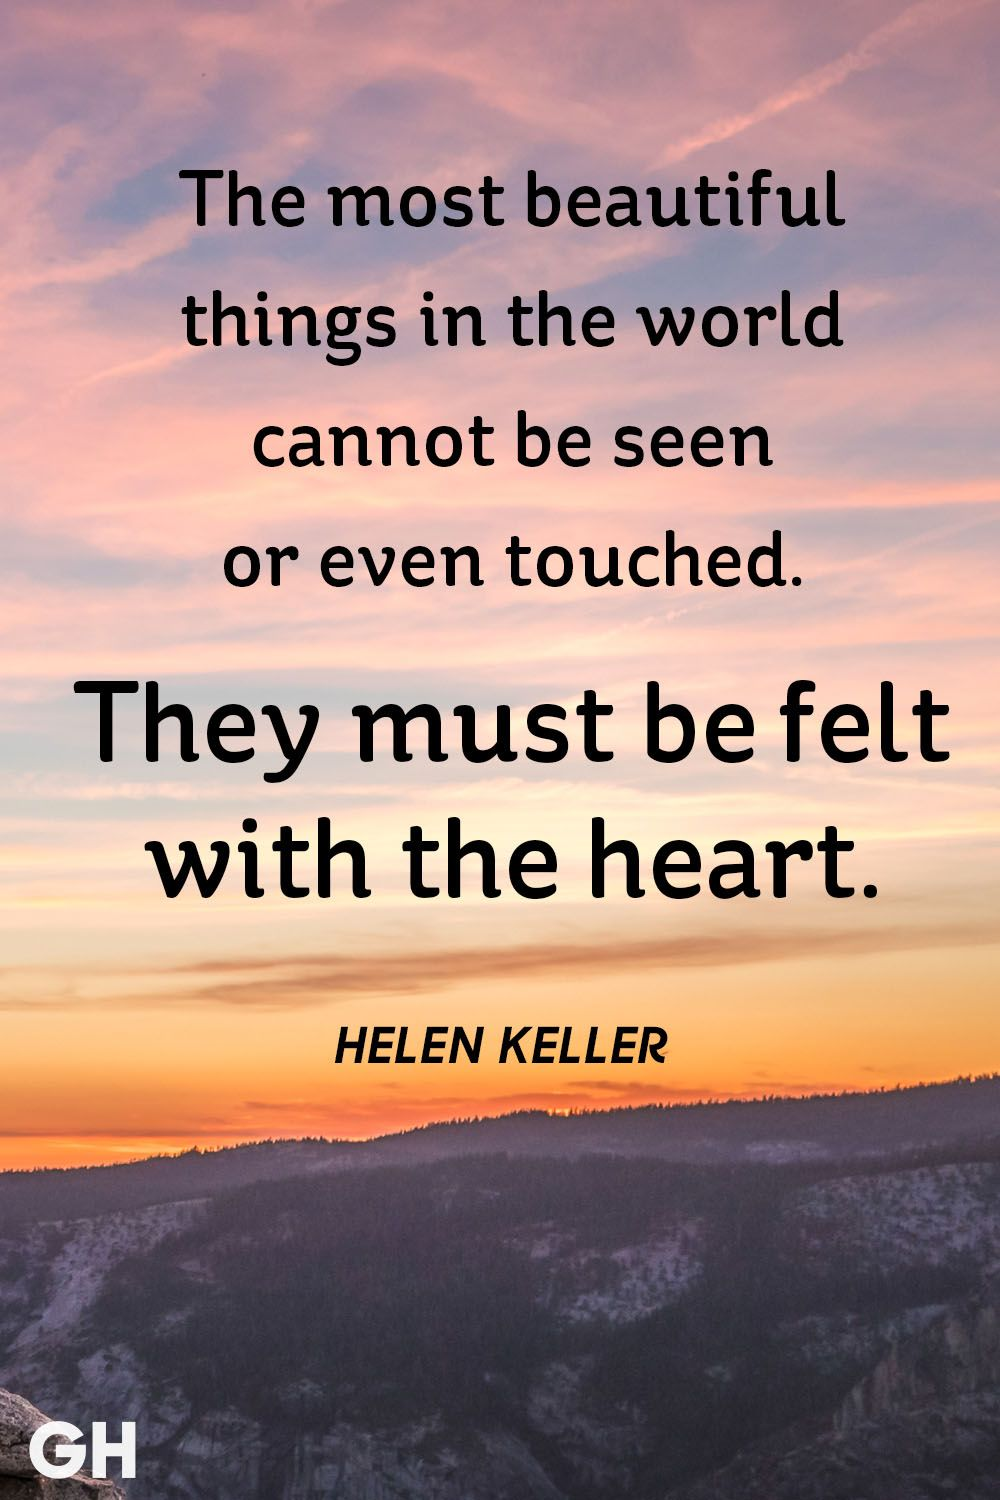 Image of: Wisdom Helen Keller Beautiful Life Quote Good Housekeeping 30 Inspirational Quotes About Life Beautiful Famous Life Quotes